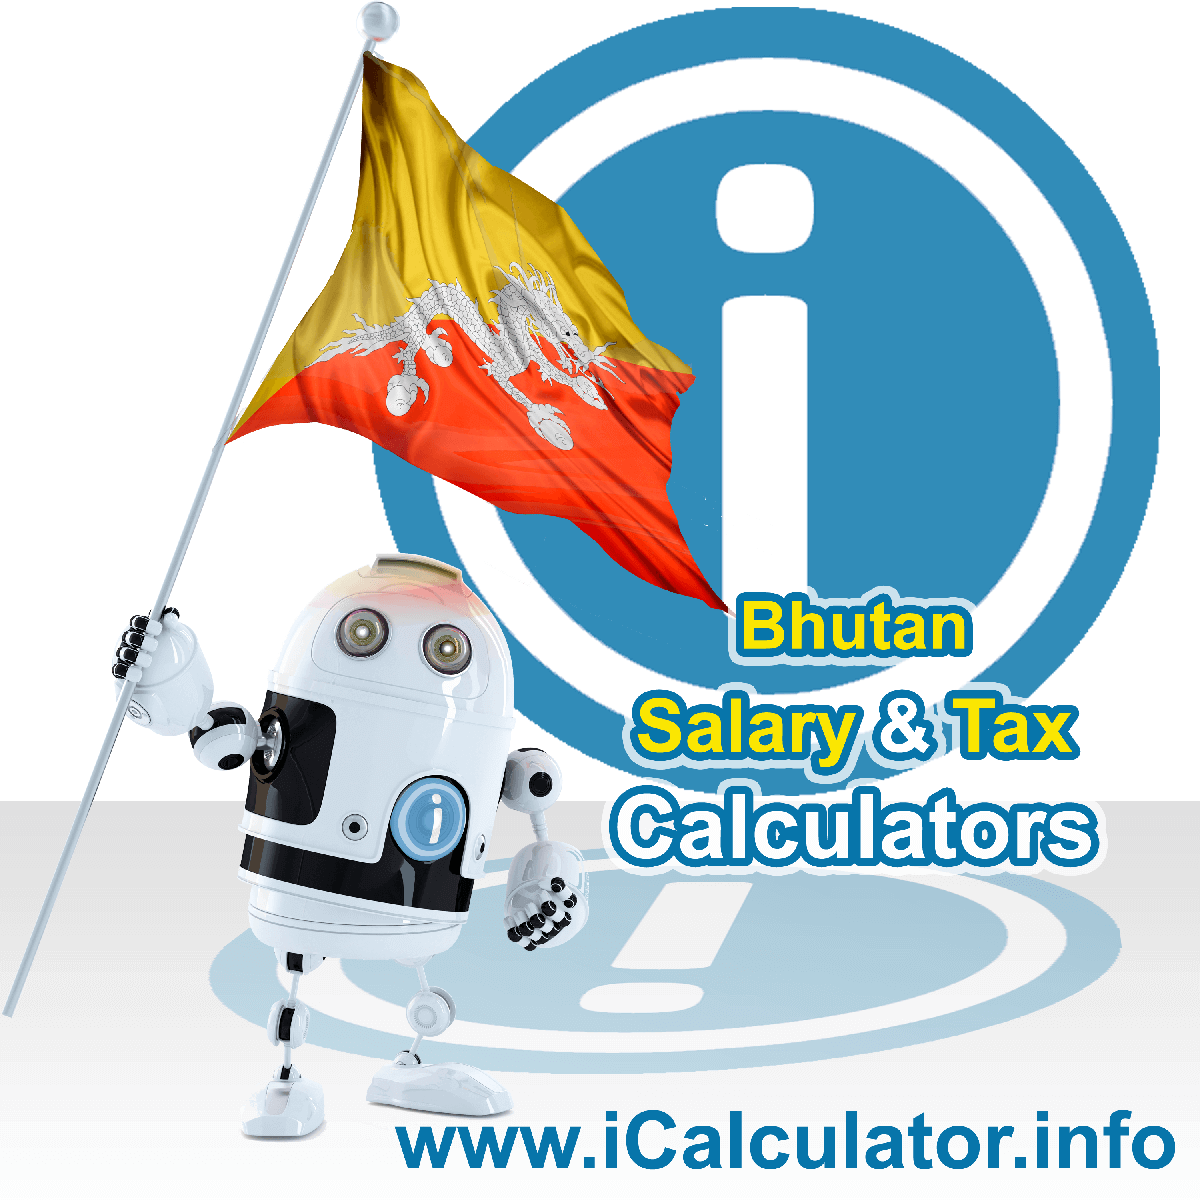 Bhutan Wage Calculator. This image shows the Bhutan flag and information relating to the tax formula for the Bhutan Tax Calculator